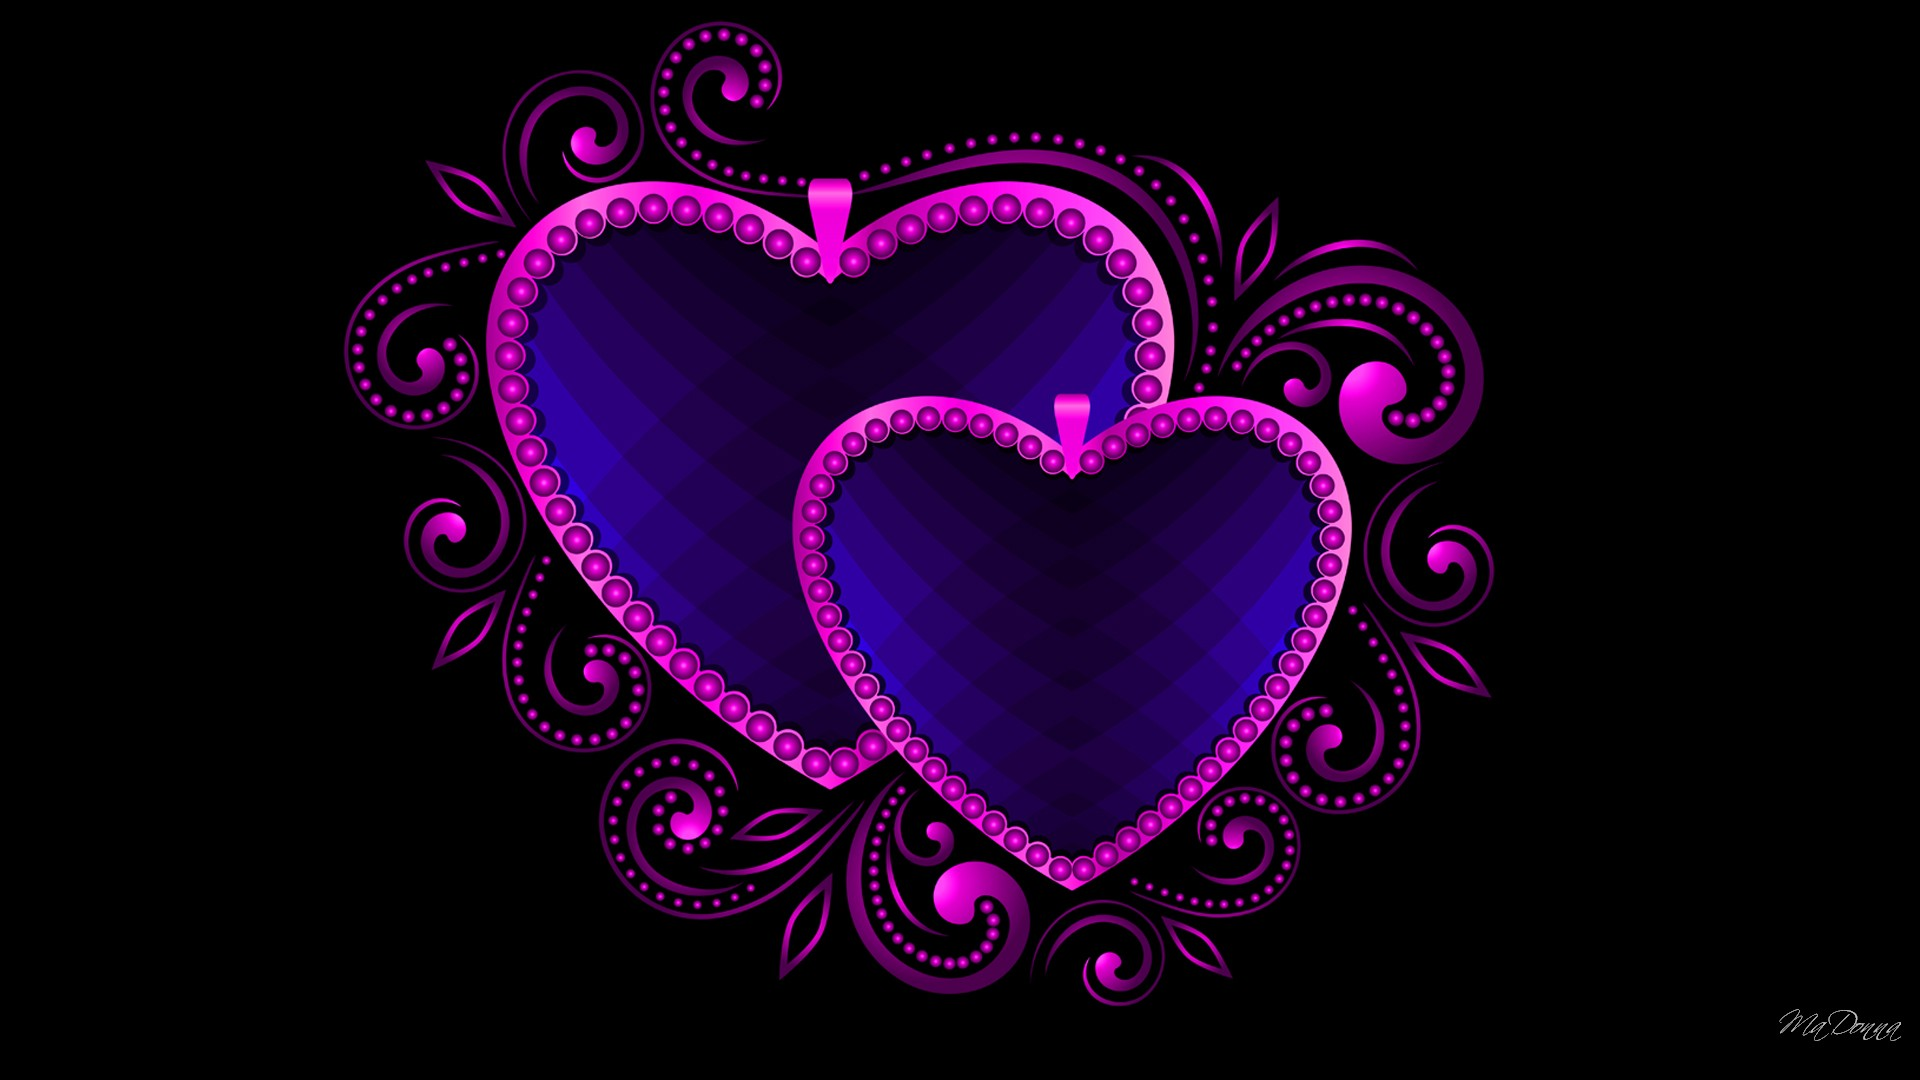 Purple And Blue Hearts Full HD Wallpaper Background Image